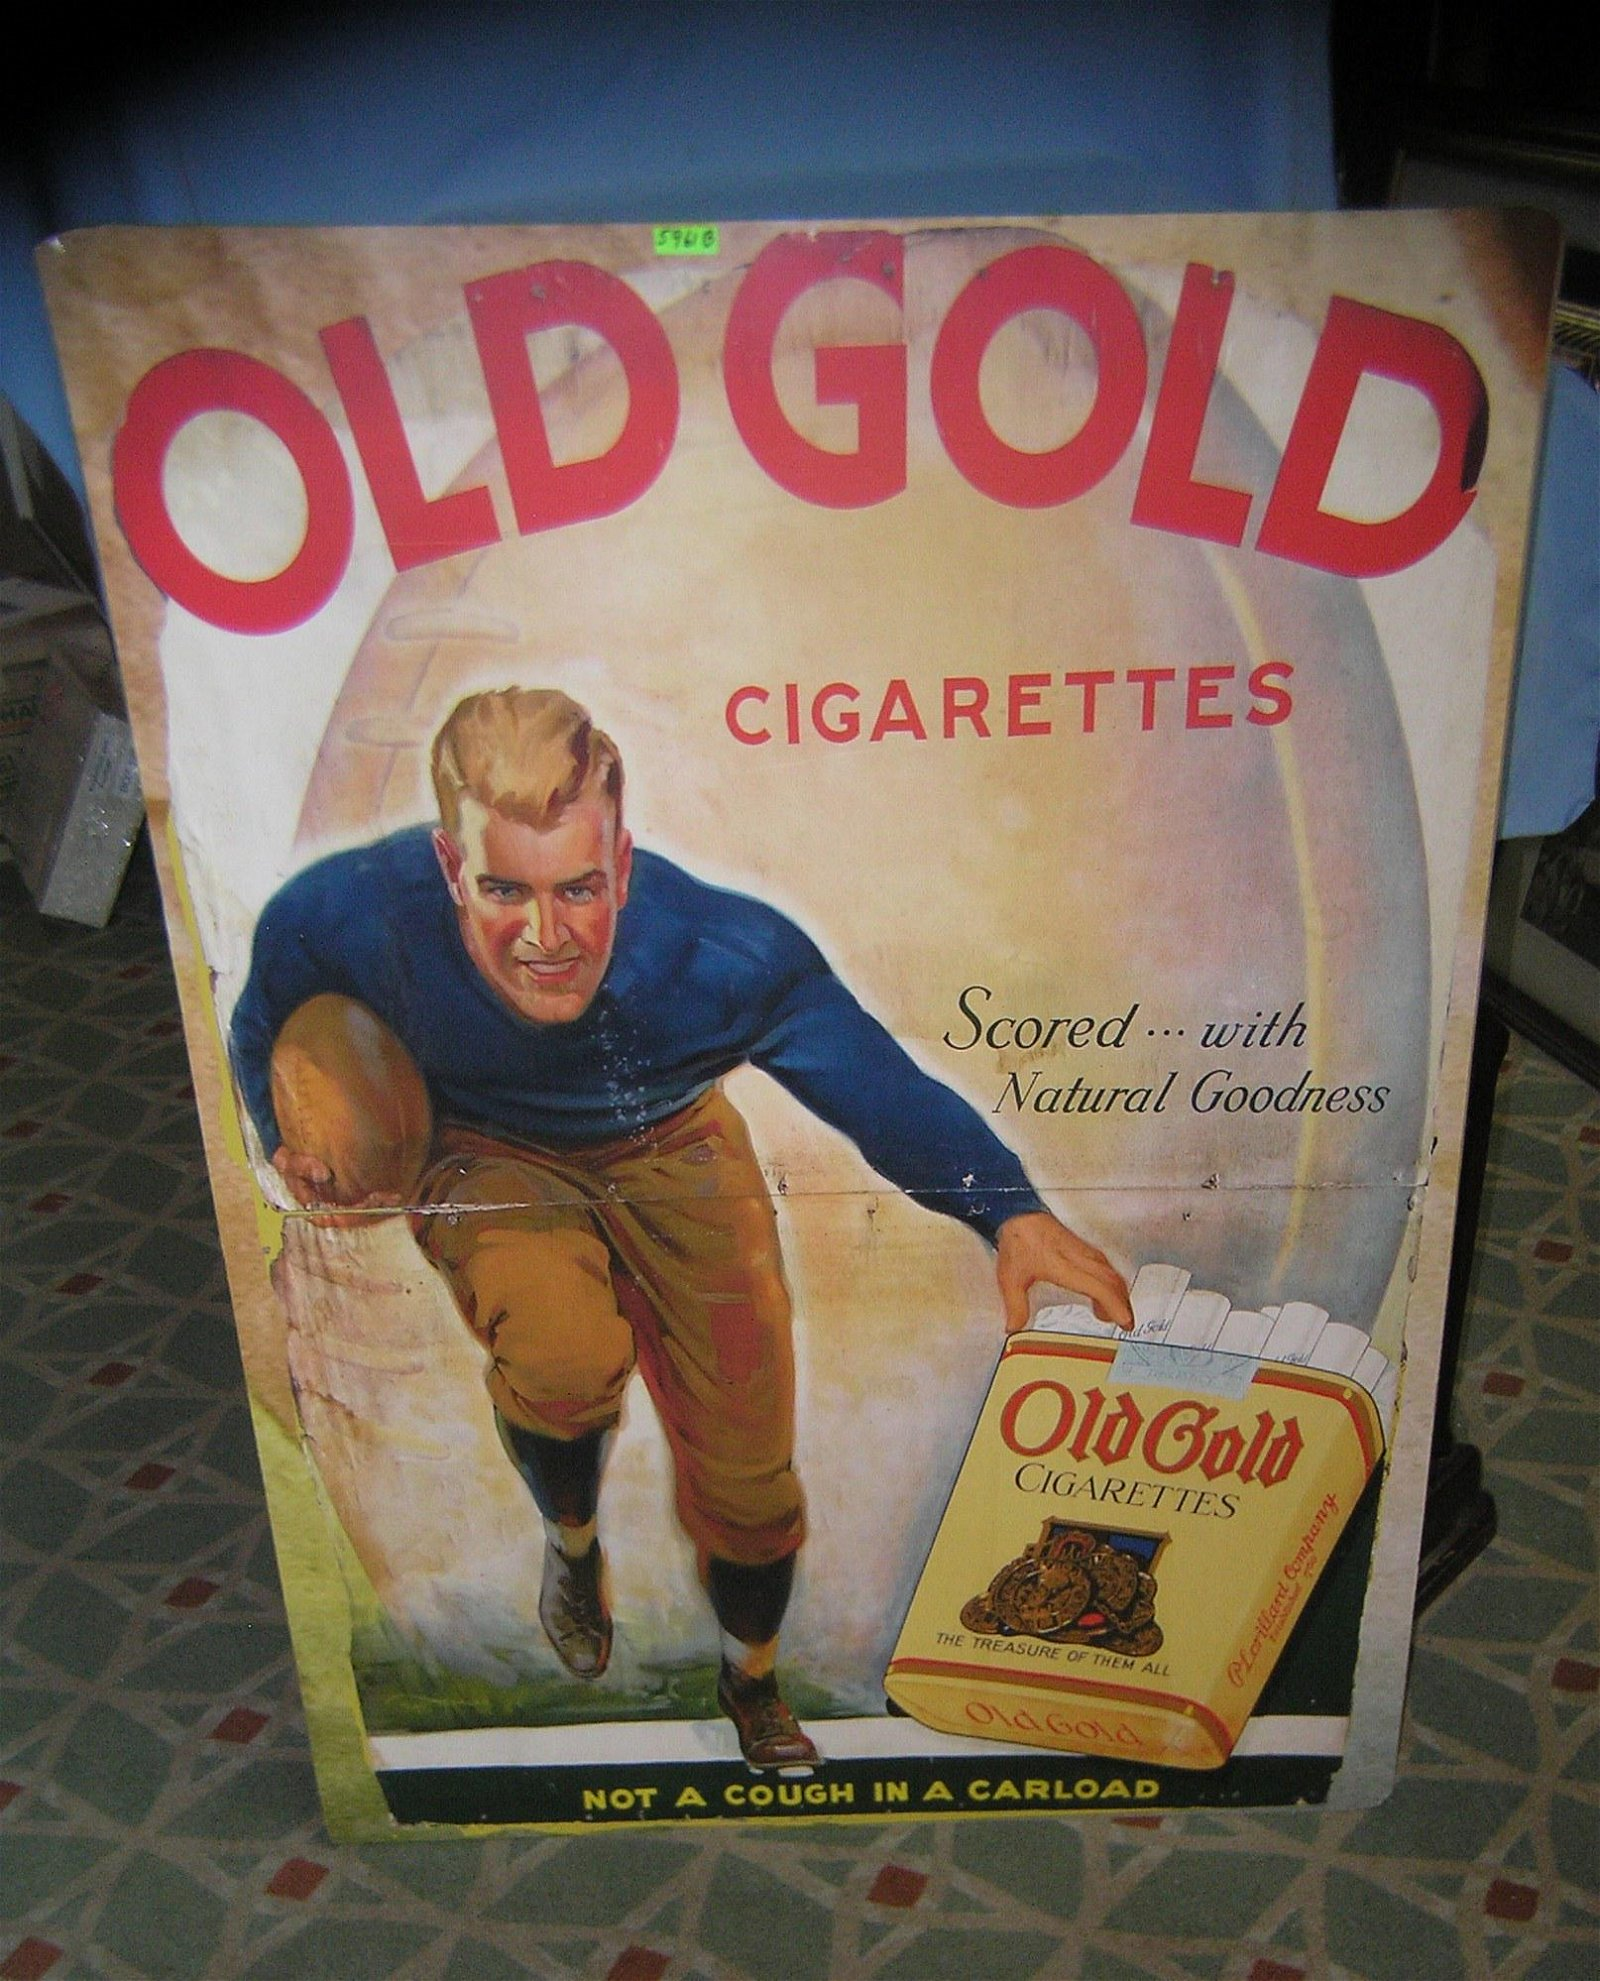 Old Gold cigarettes large retro style advertising sign